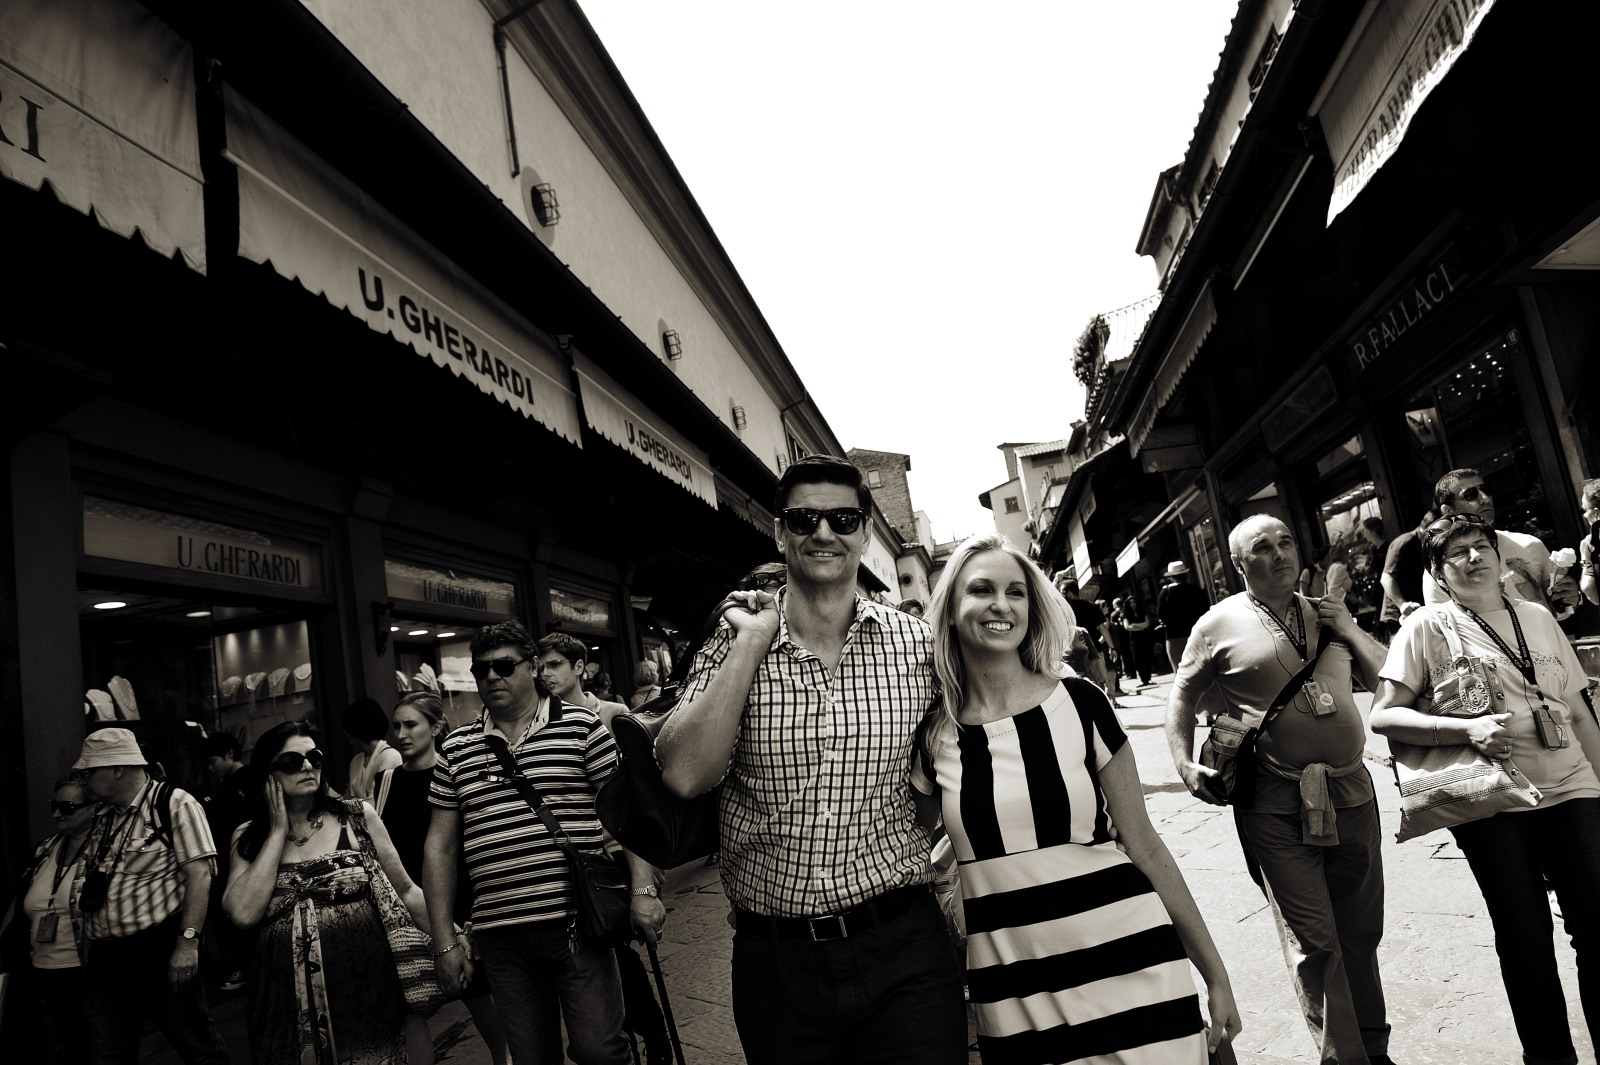 Passeggiando sul Ponte Vecchio - Walking on the Old Bridge